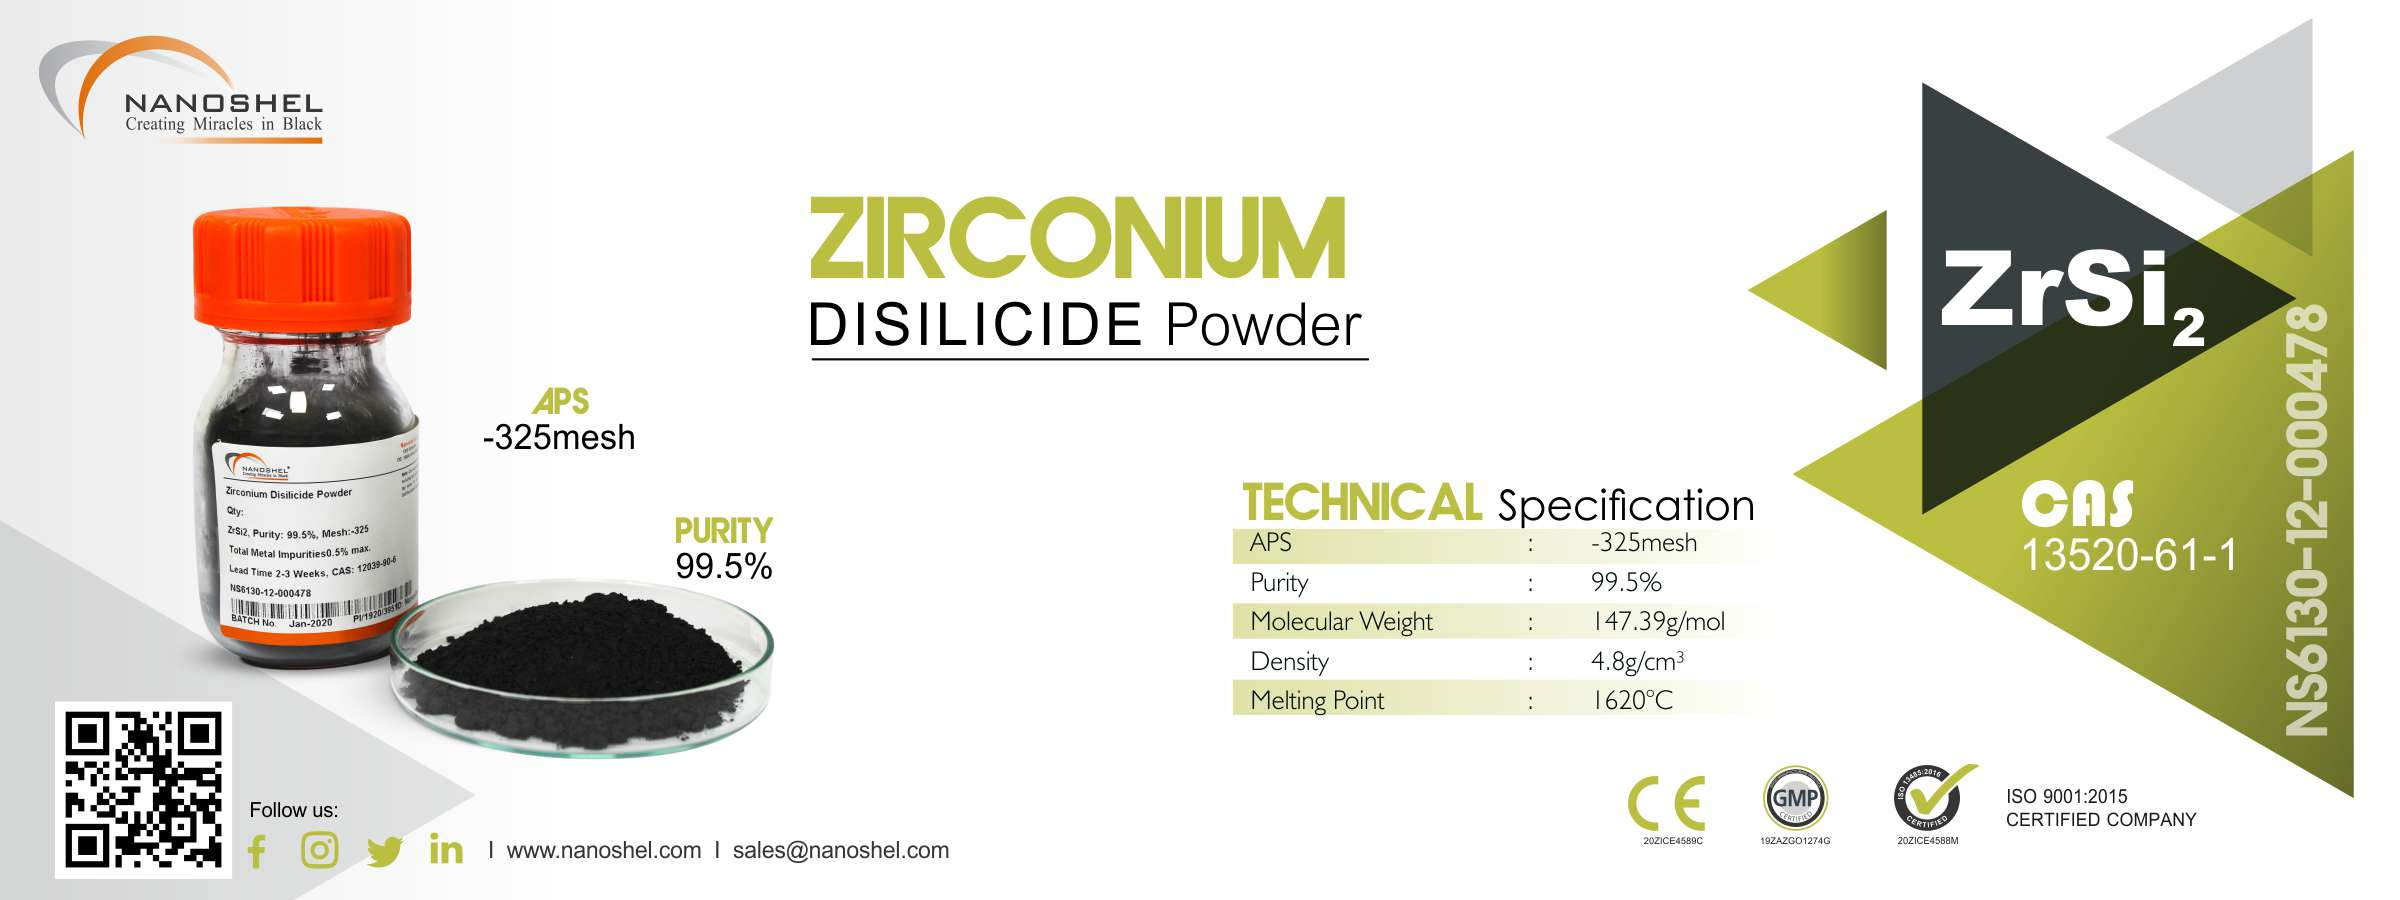 Zirconium Disilicide Powder